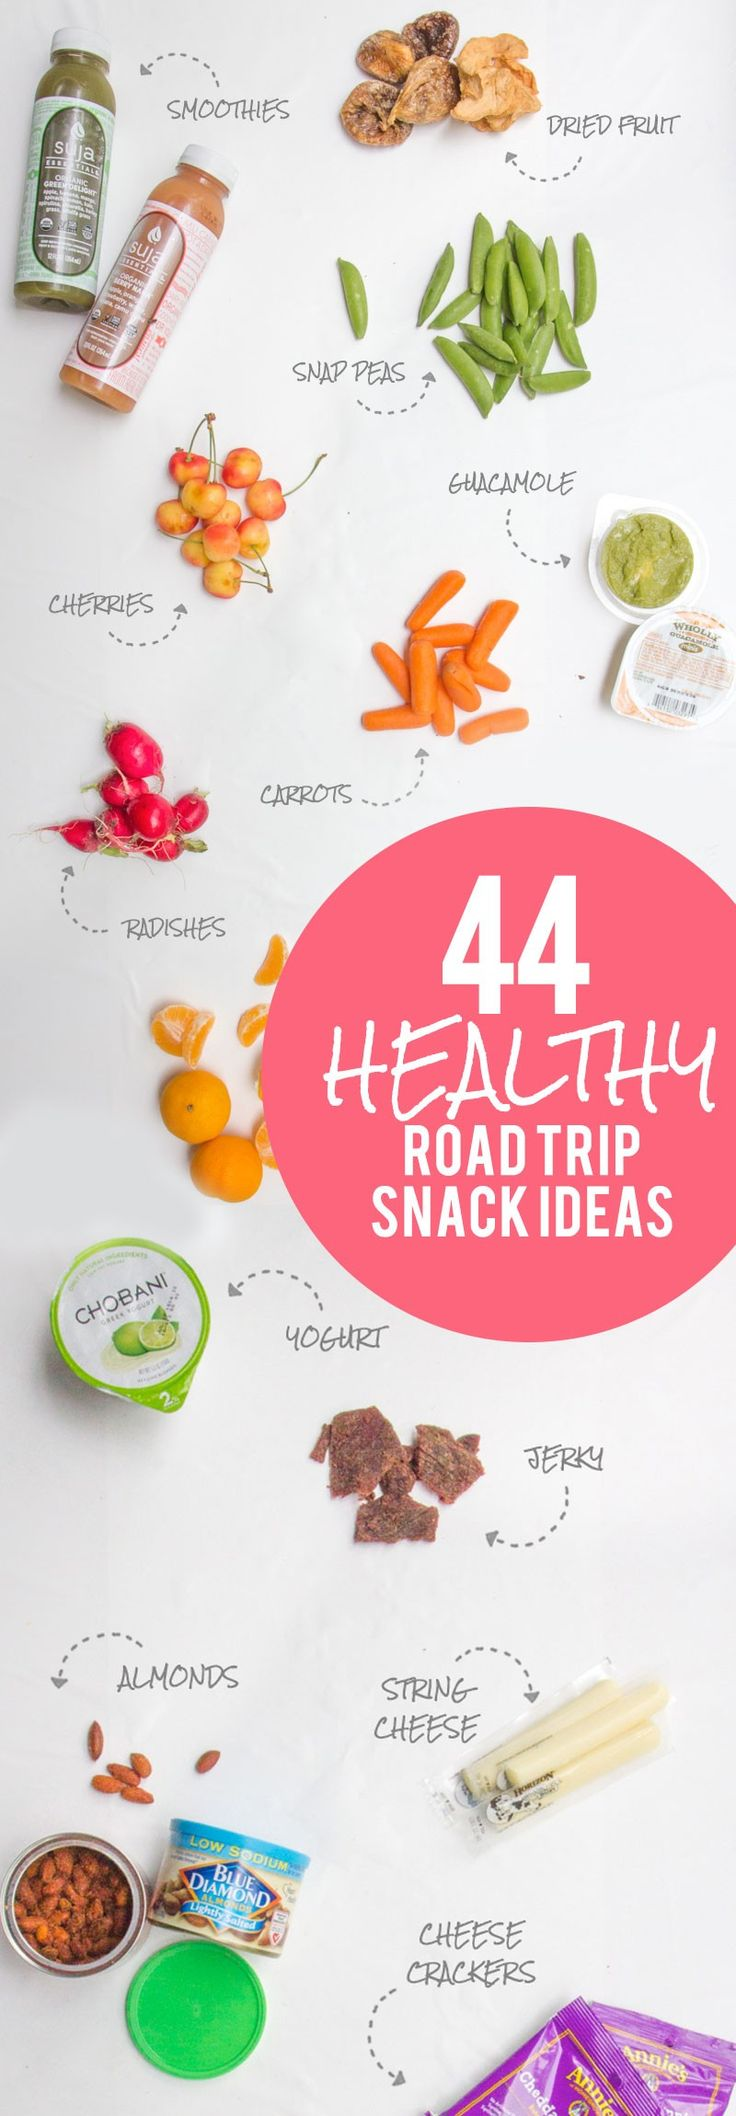 44 Healthy Road Trip Snack Ideas #ad